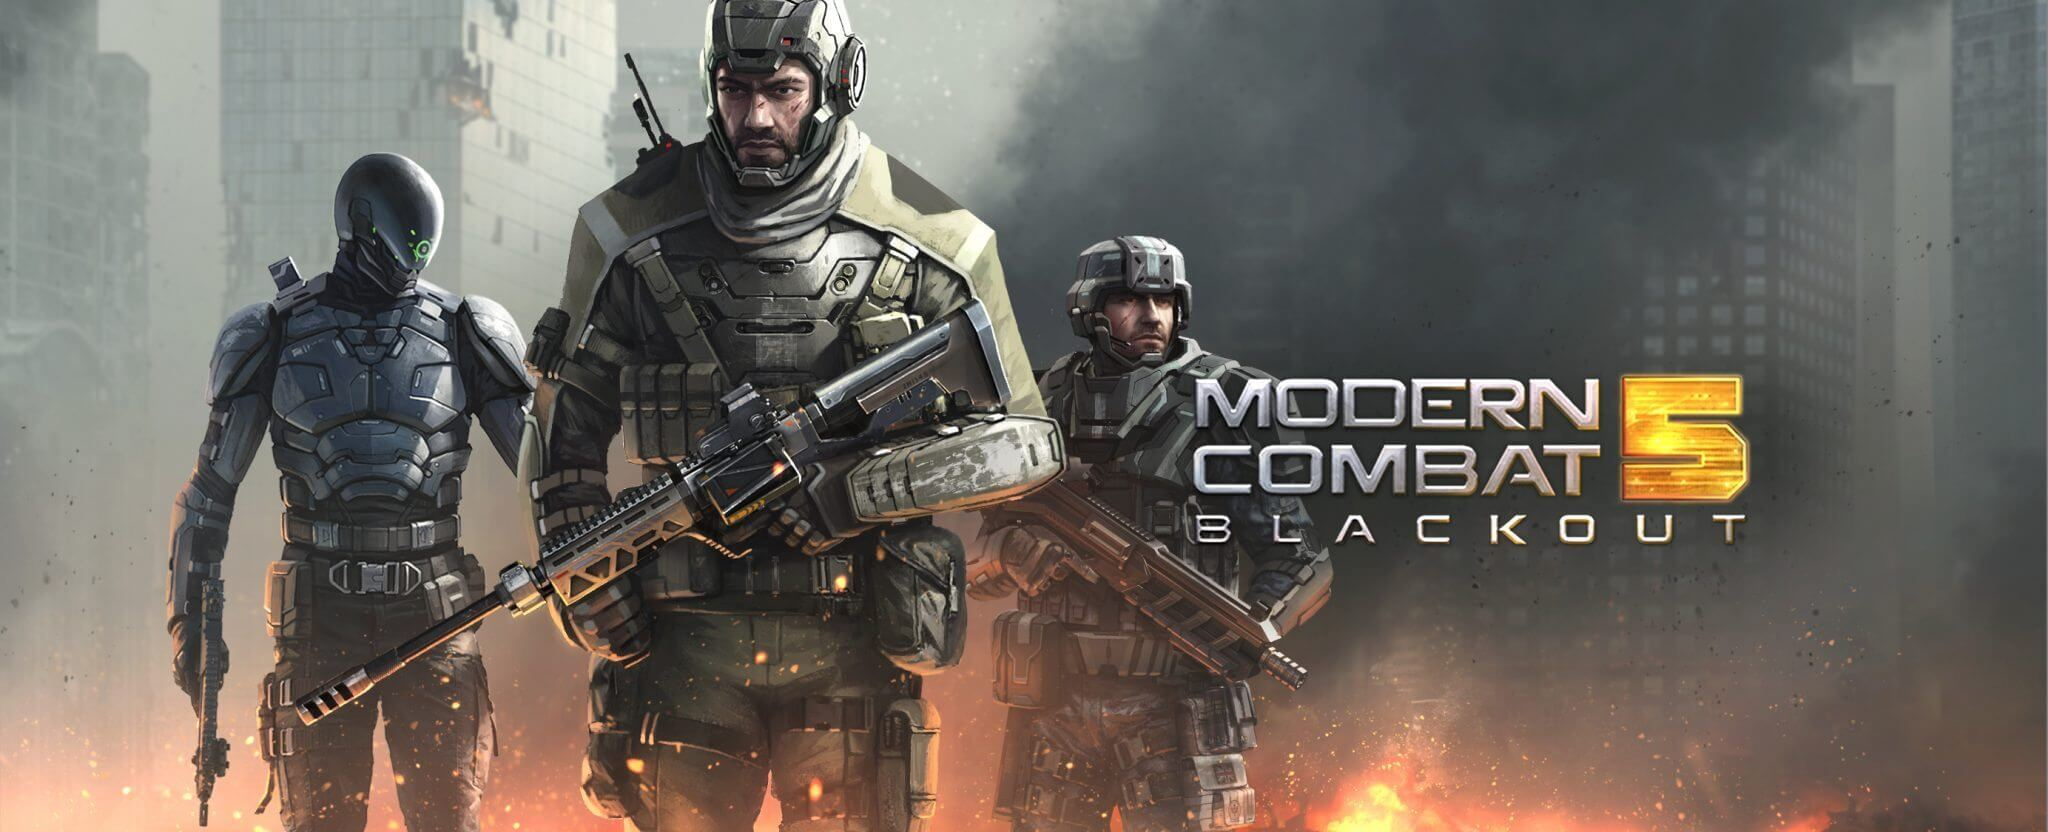 Game Review: Modern Combat 5 (iOS/Android)